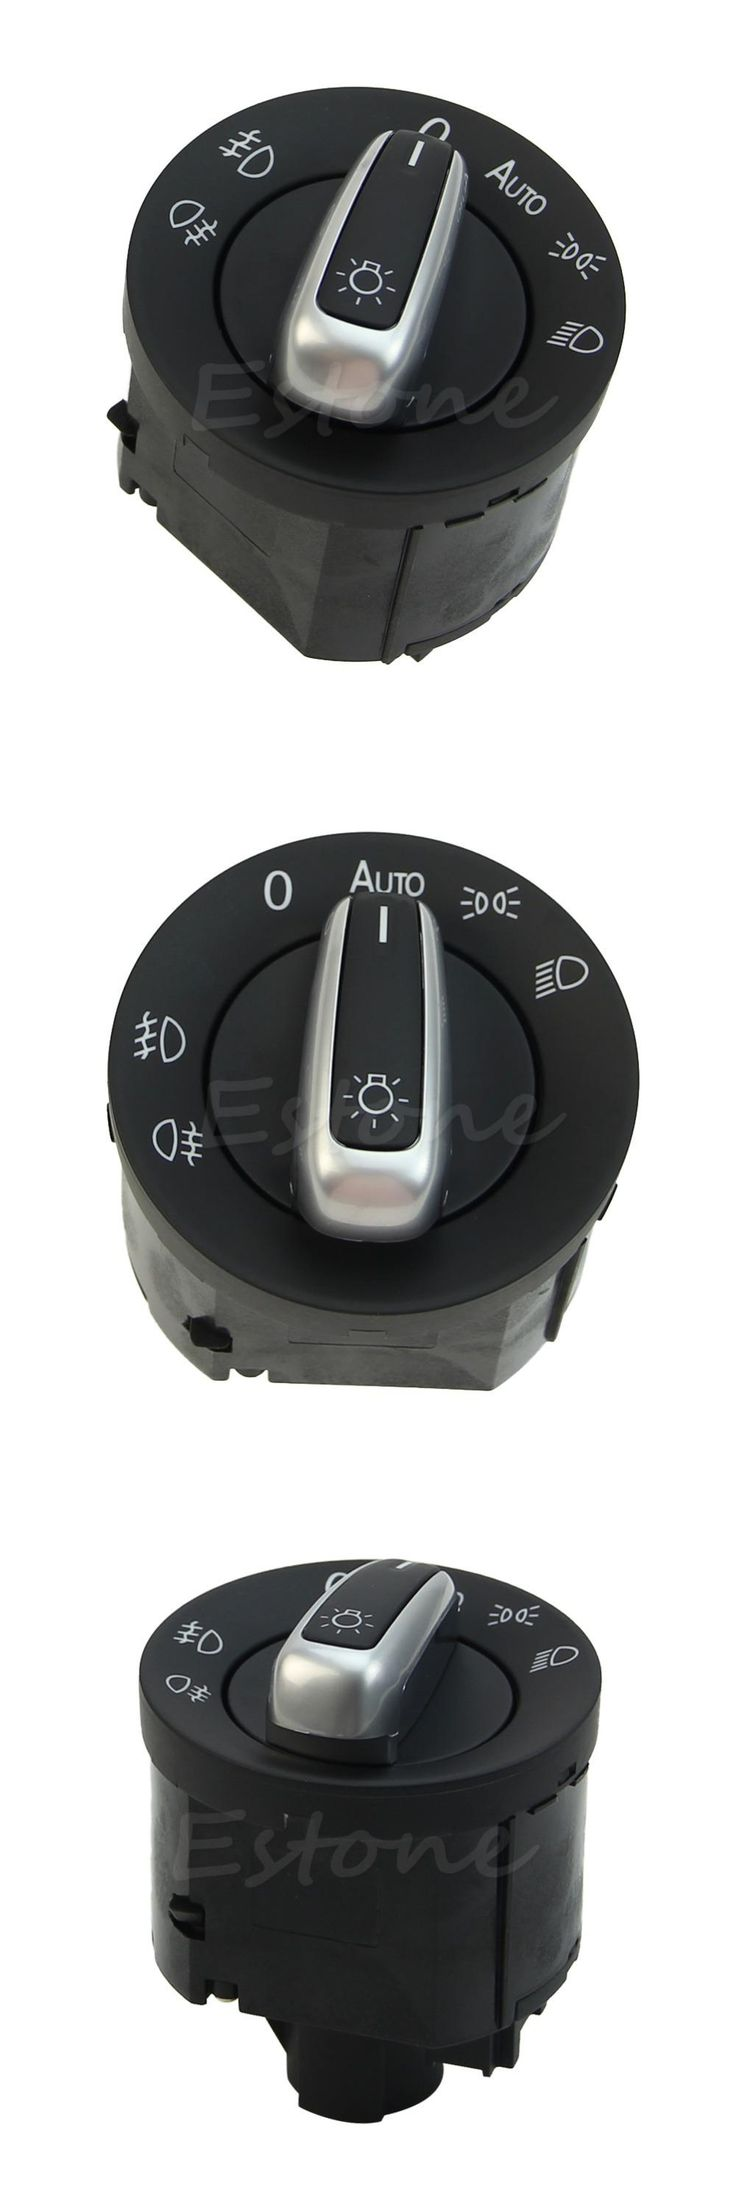 visit to buy kris chrome headlight switch control fit for vw golf jetta mk5